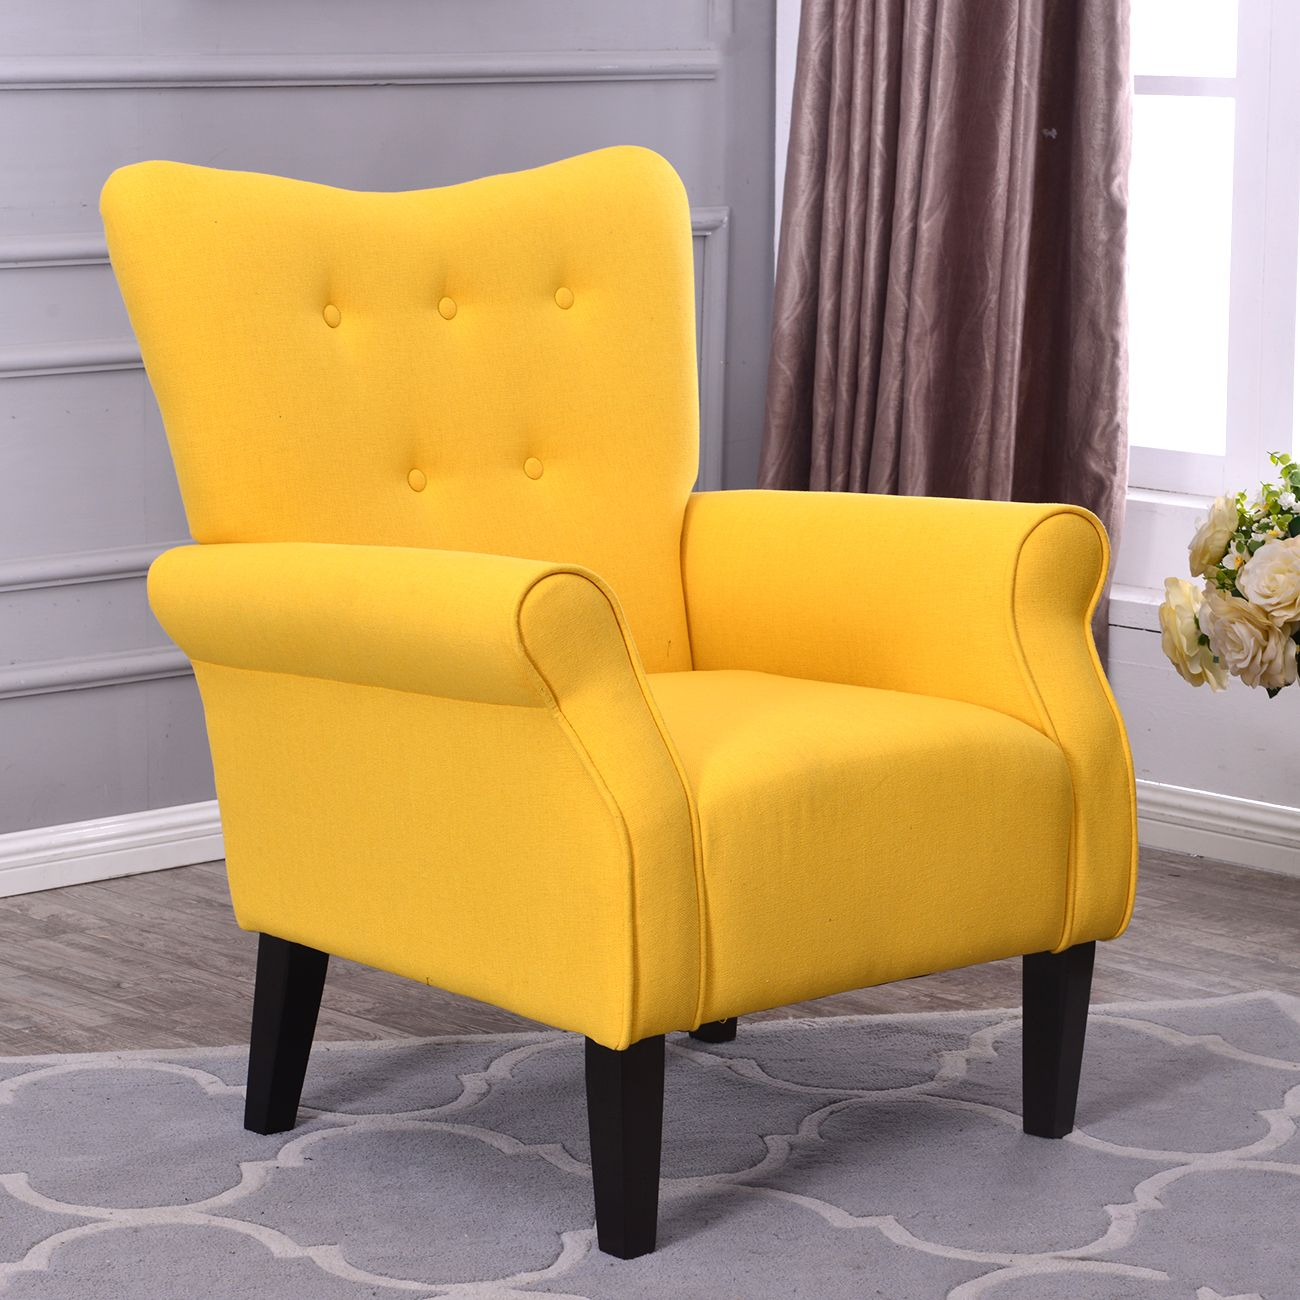 Citric Yellow Accent Arm Chair Decor26 With Images Yellow